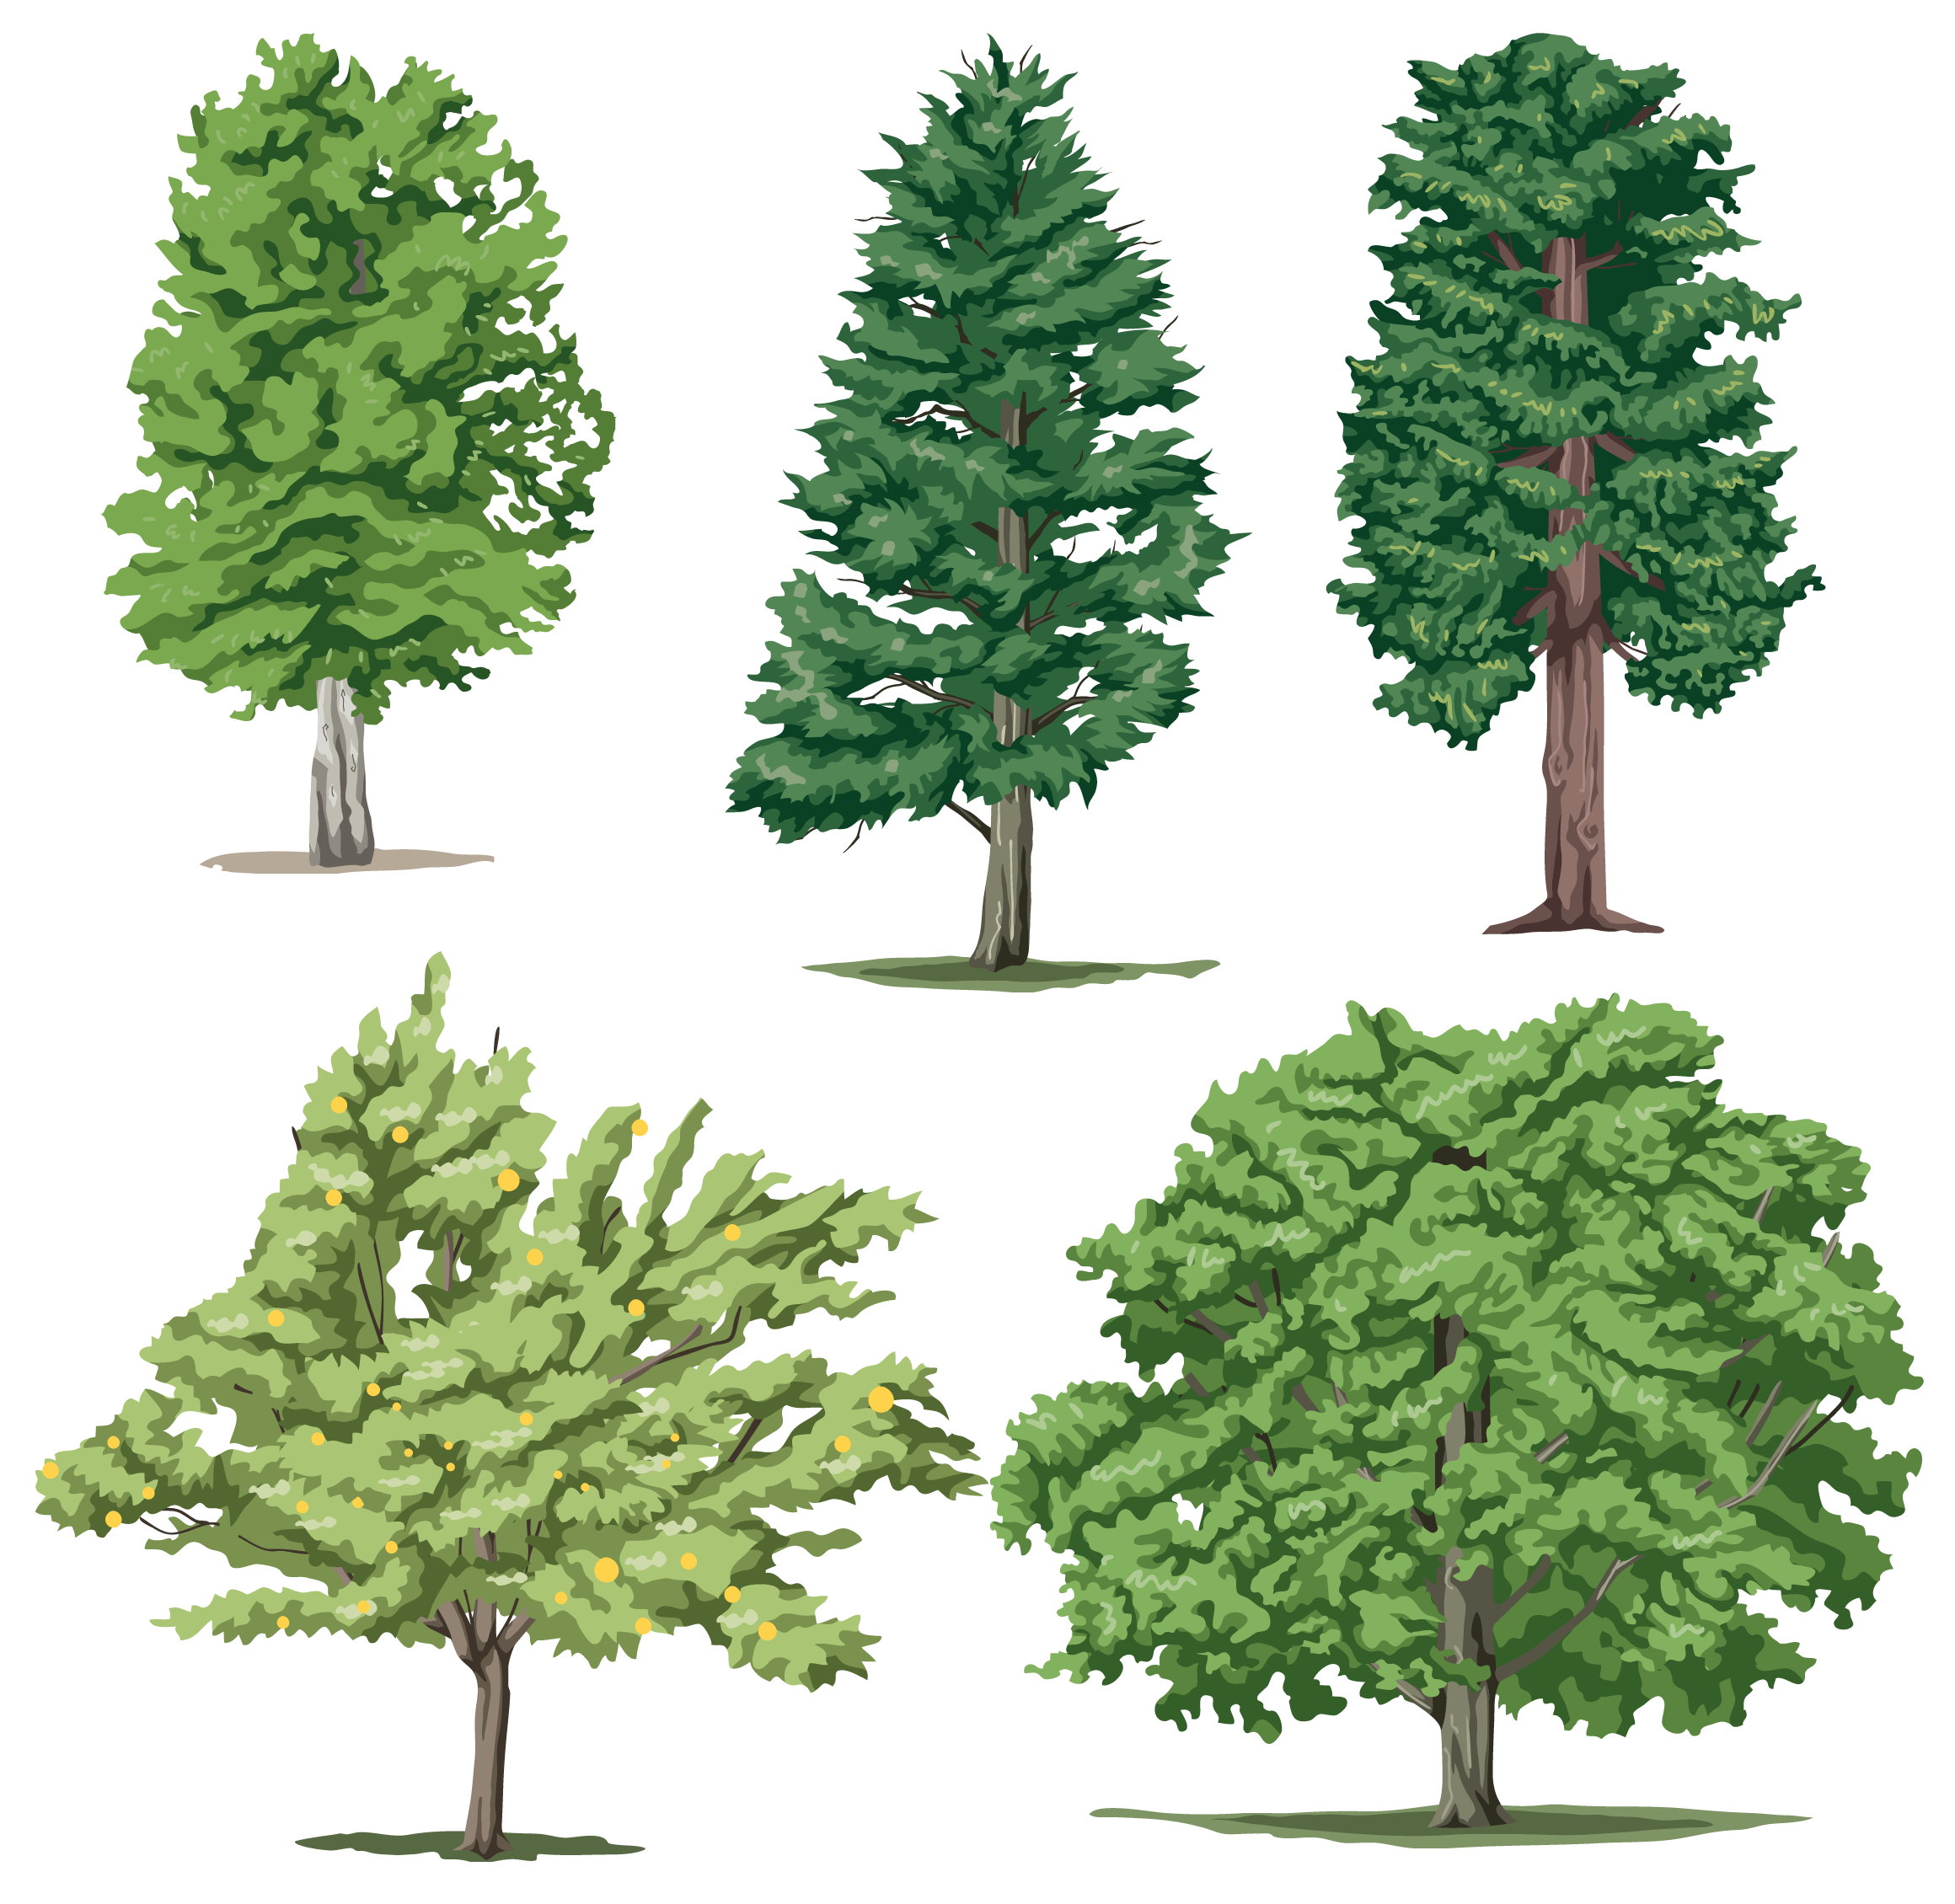 Tree Png Cartoon Realistic Trees All Types